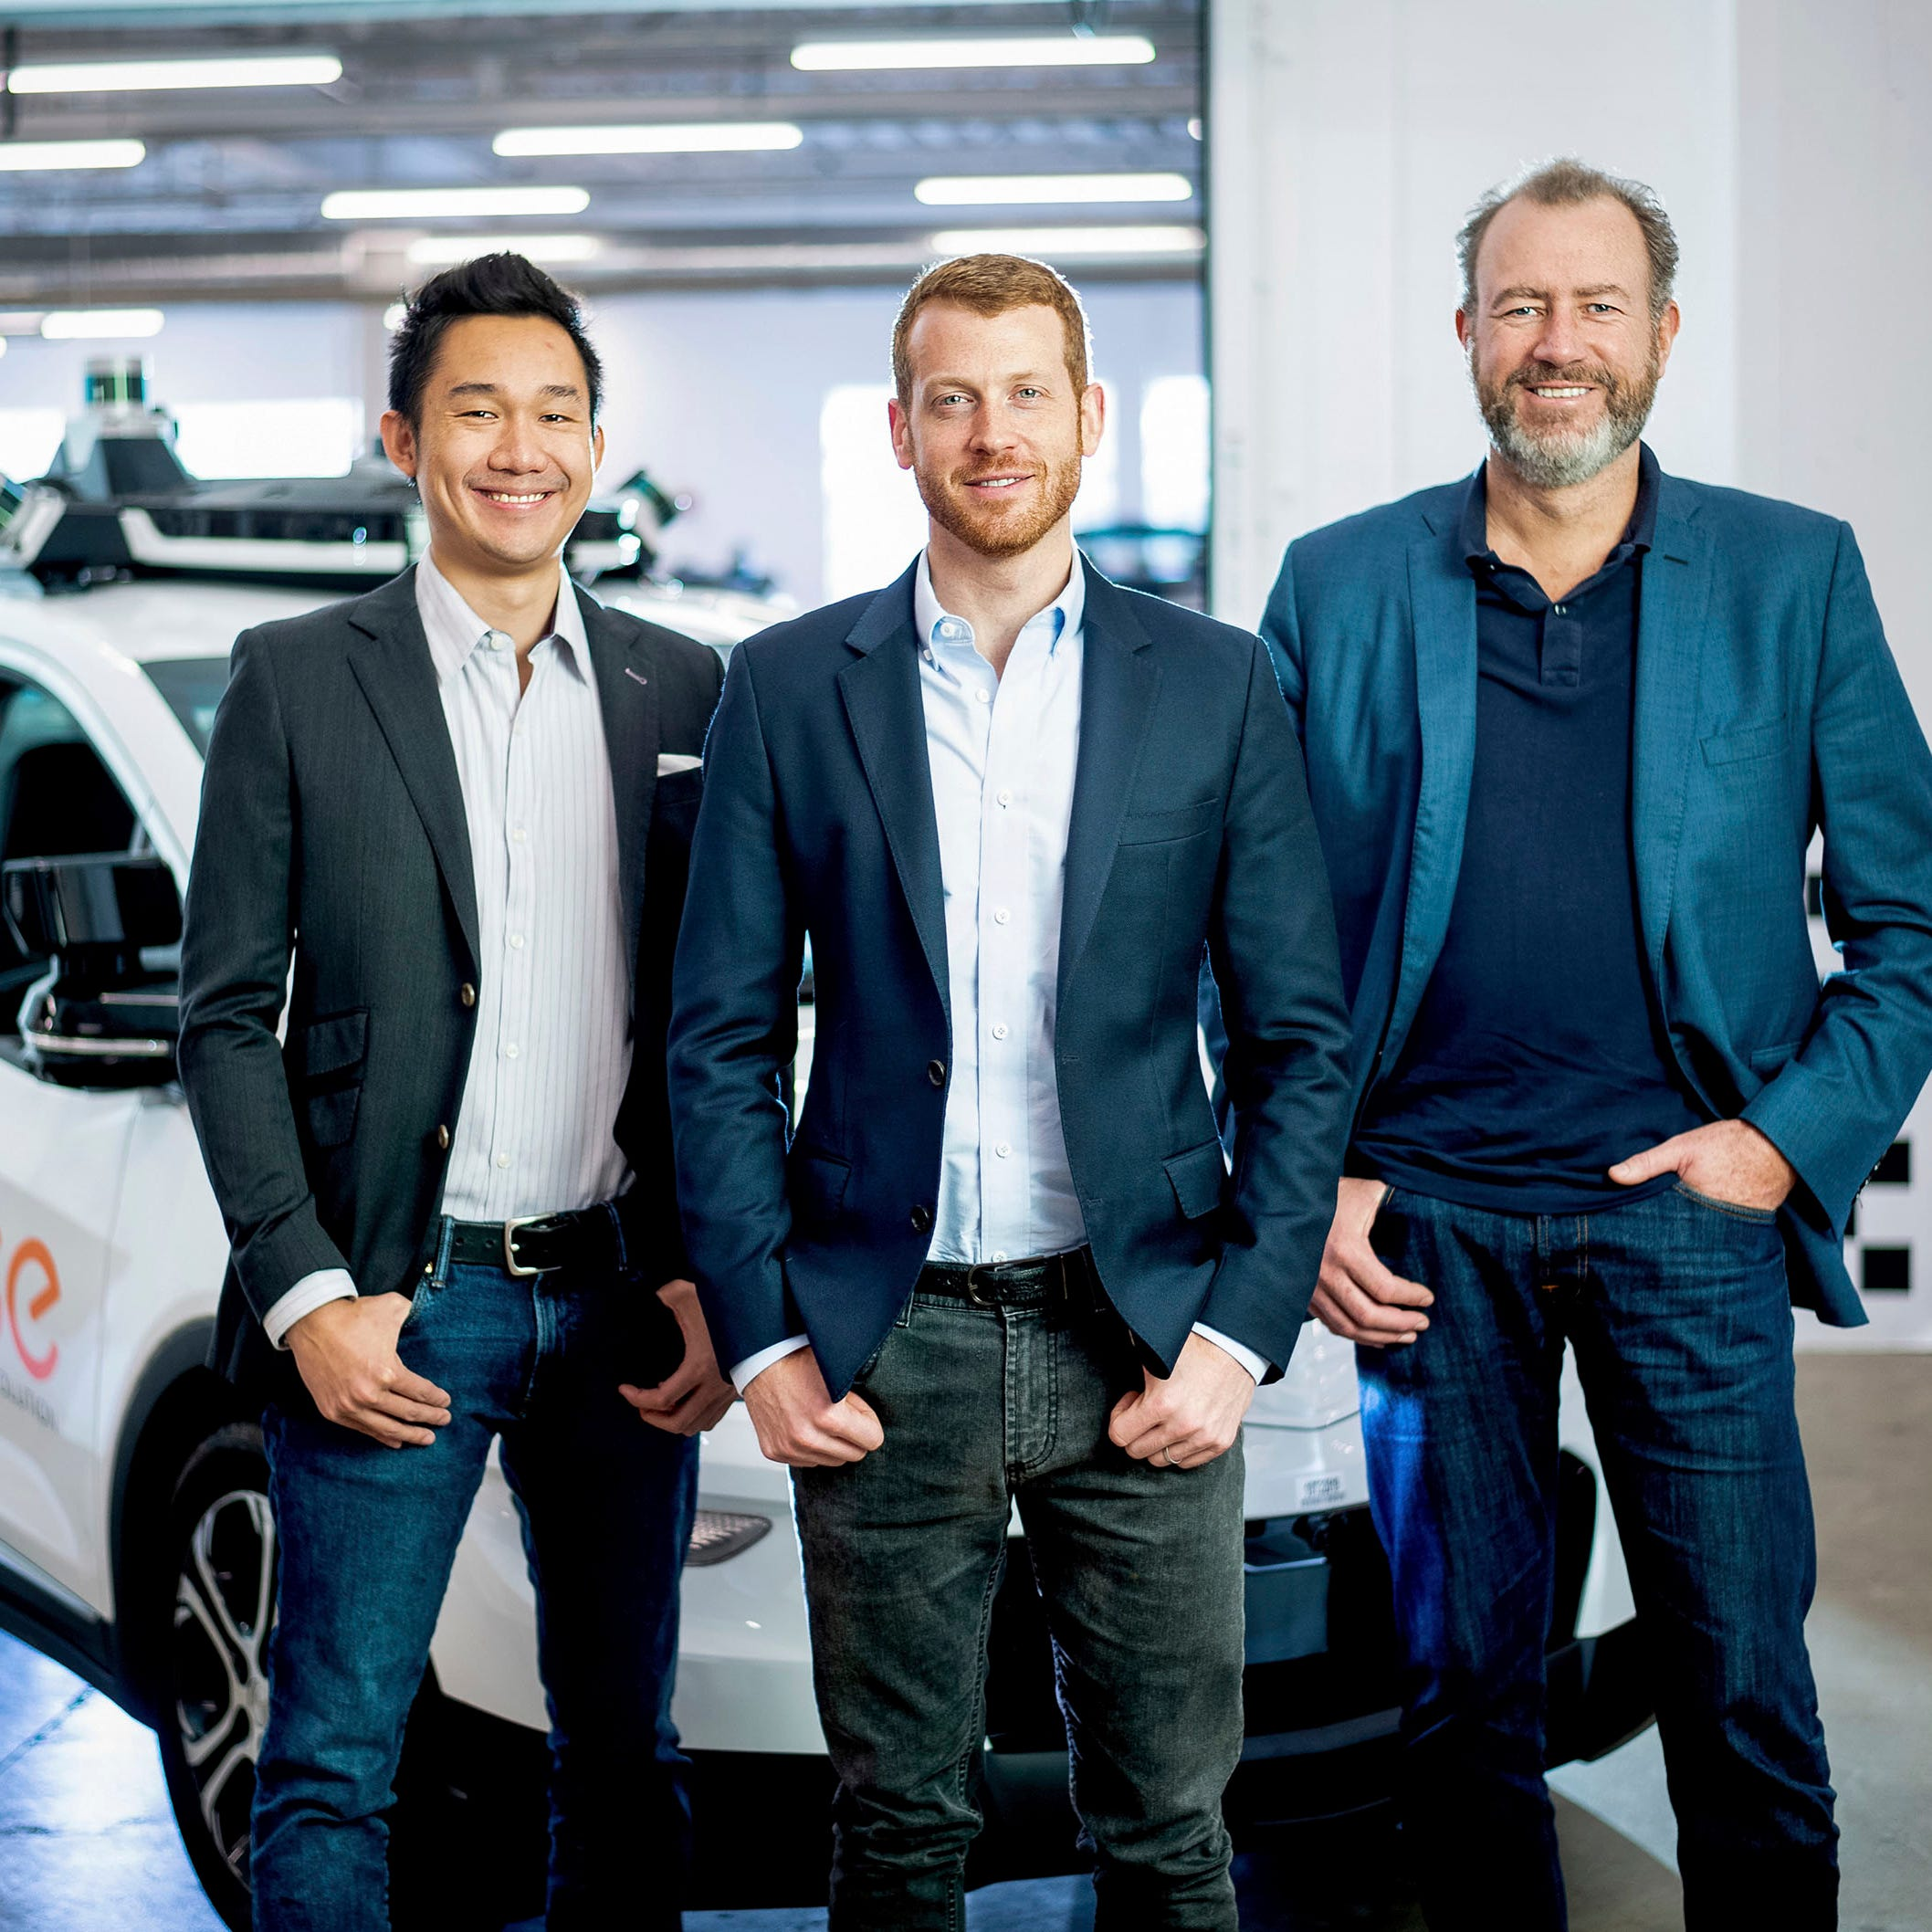 Cruise Automation's Dan Kan and Kyle Vogt pose for a photo with General Motors' Dan Ammann at Cruise Automation offices in San Francisco, Calif. on Nov. 20, 2018.